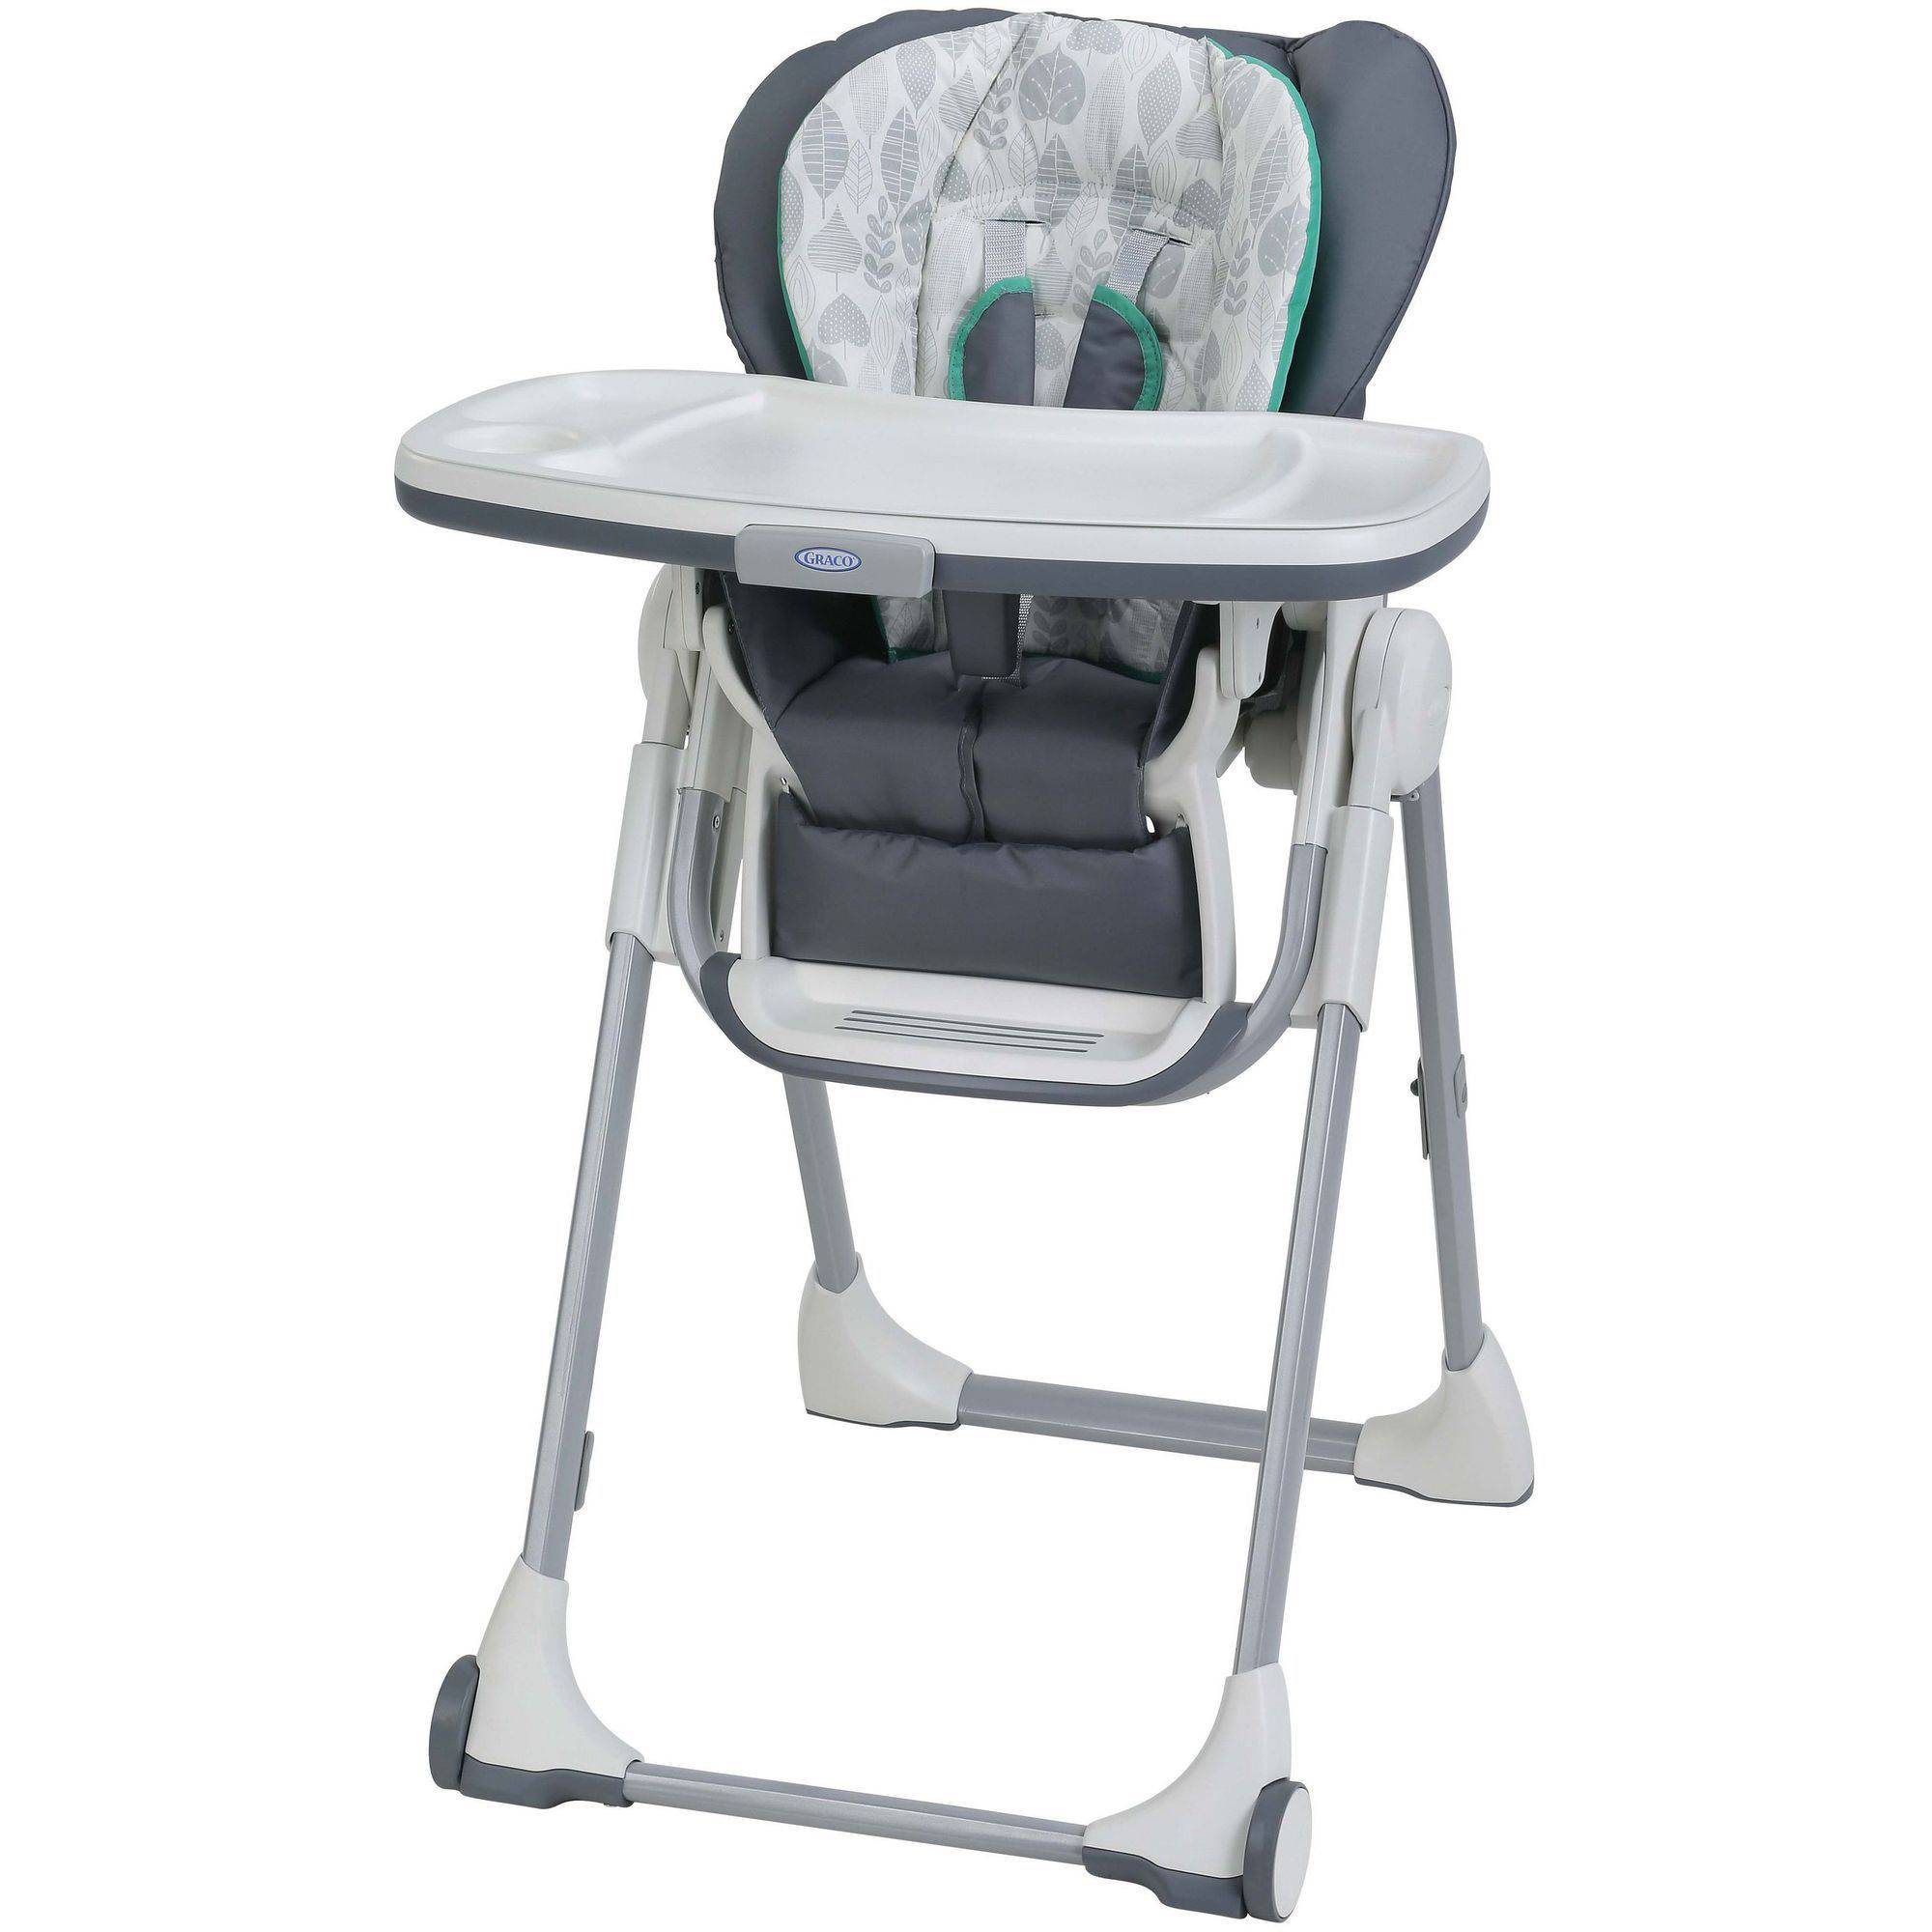 Graco Swift Fold High Chair, Briar